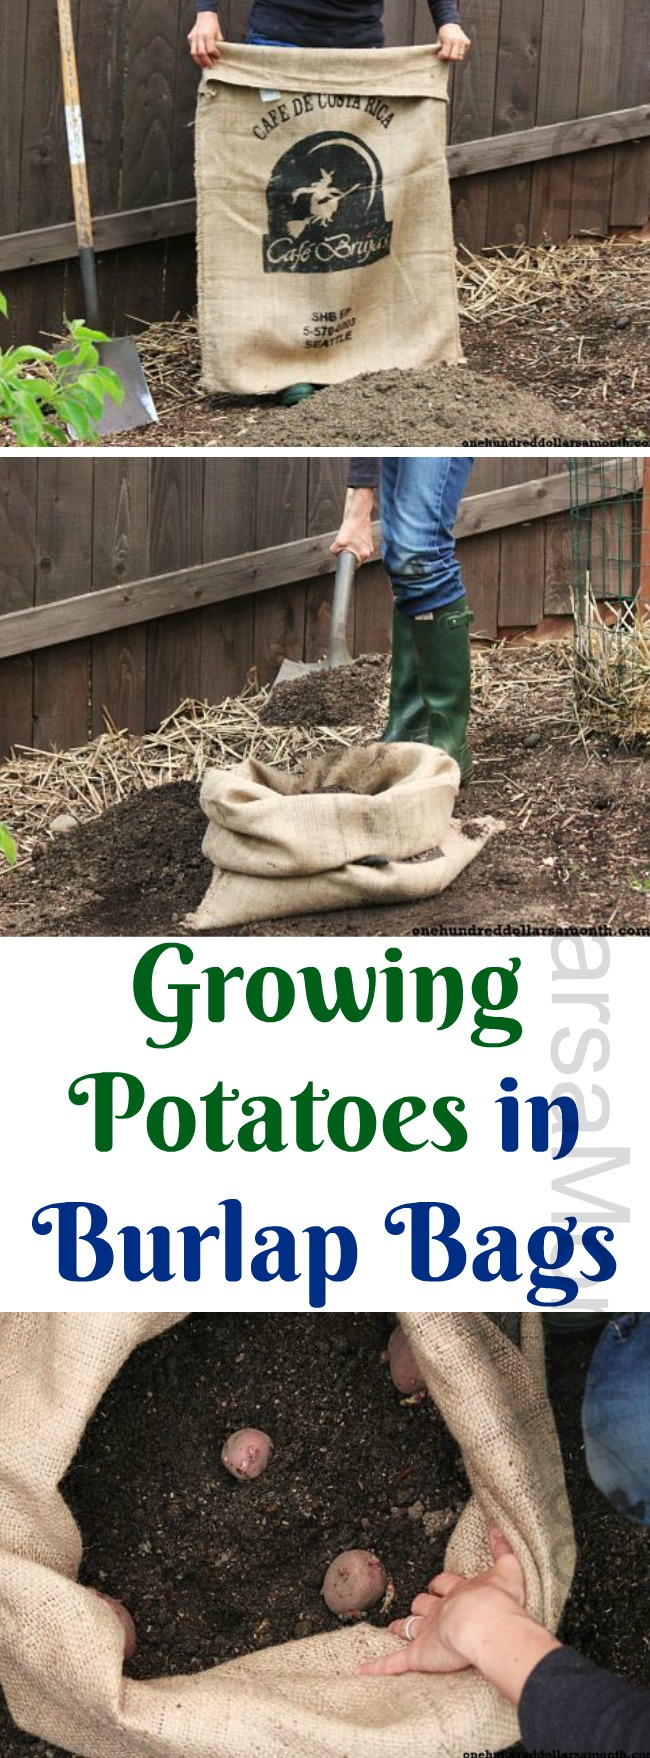 How to Plant Potatoes in a Burlap Bag